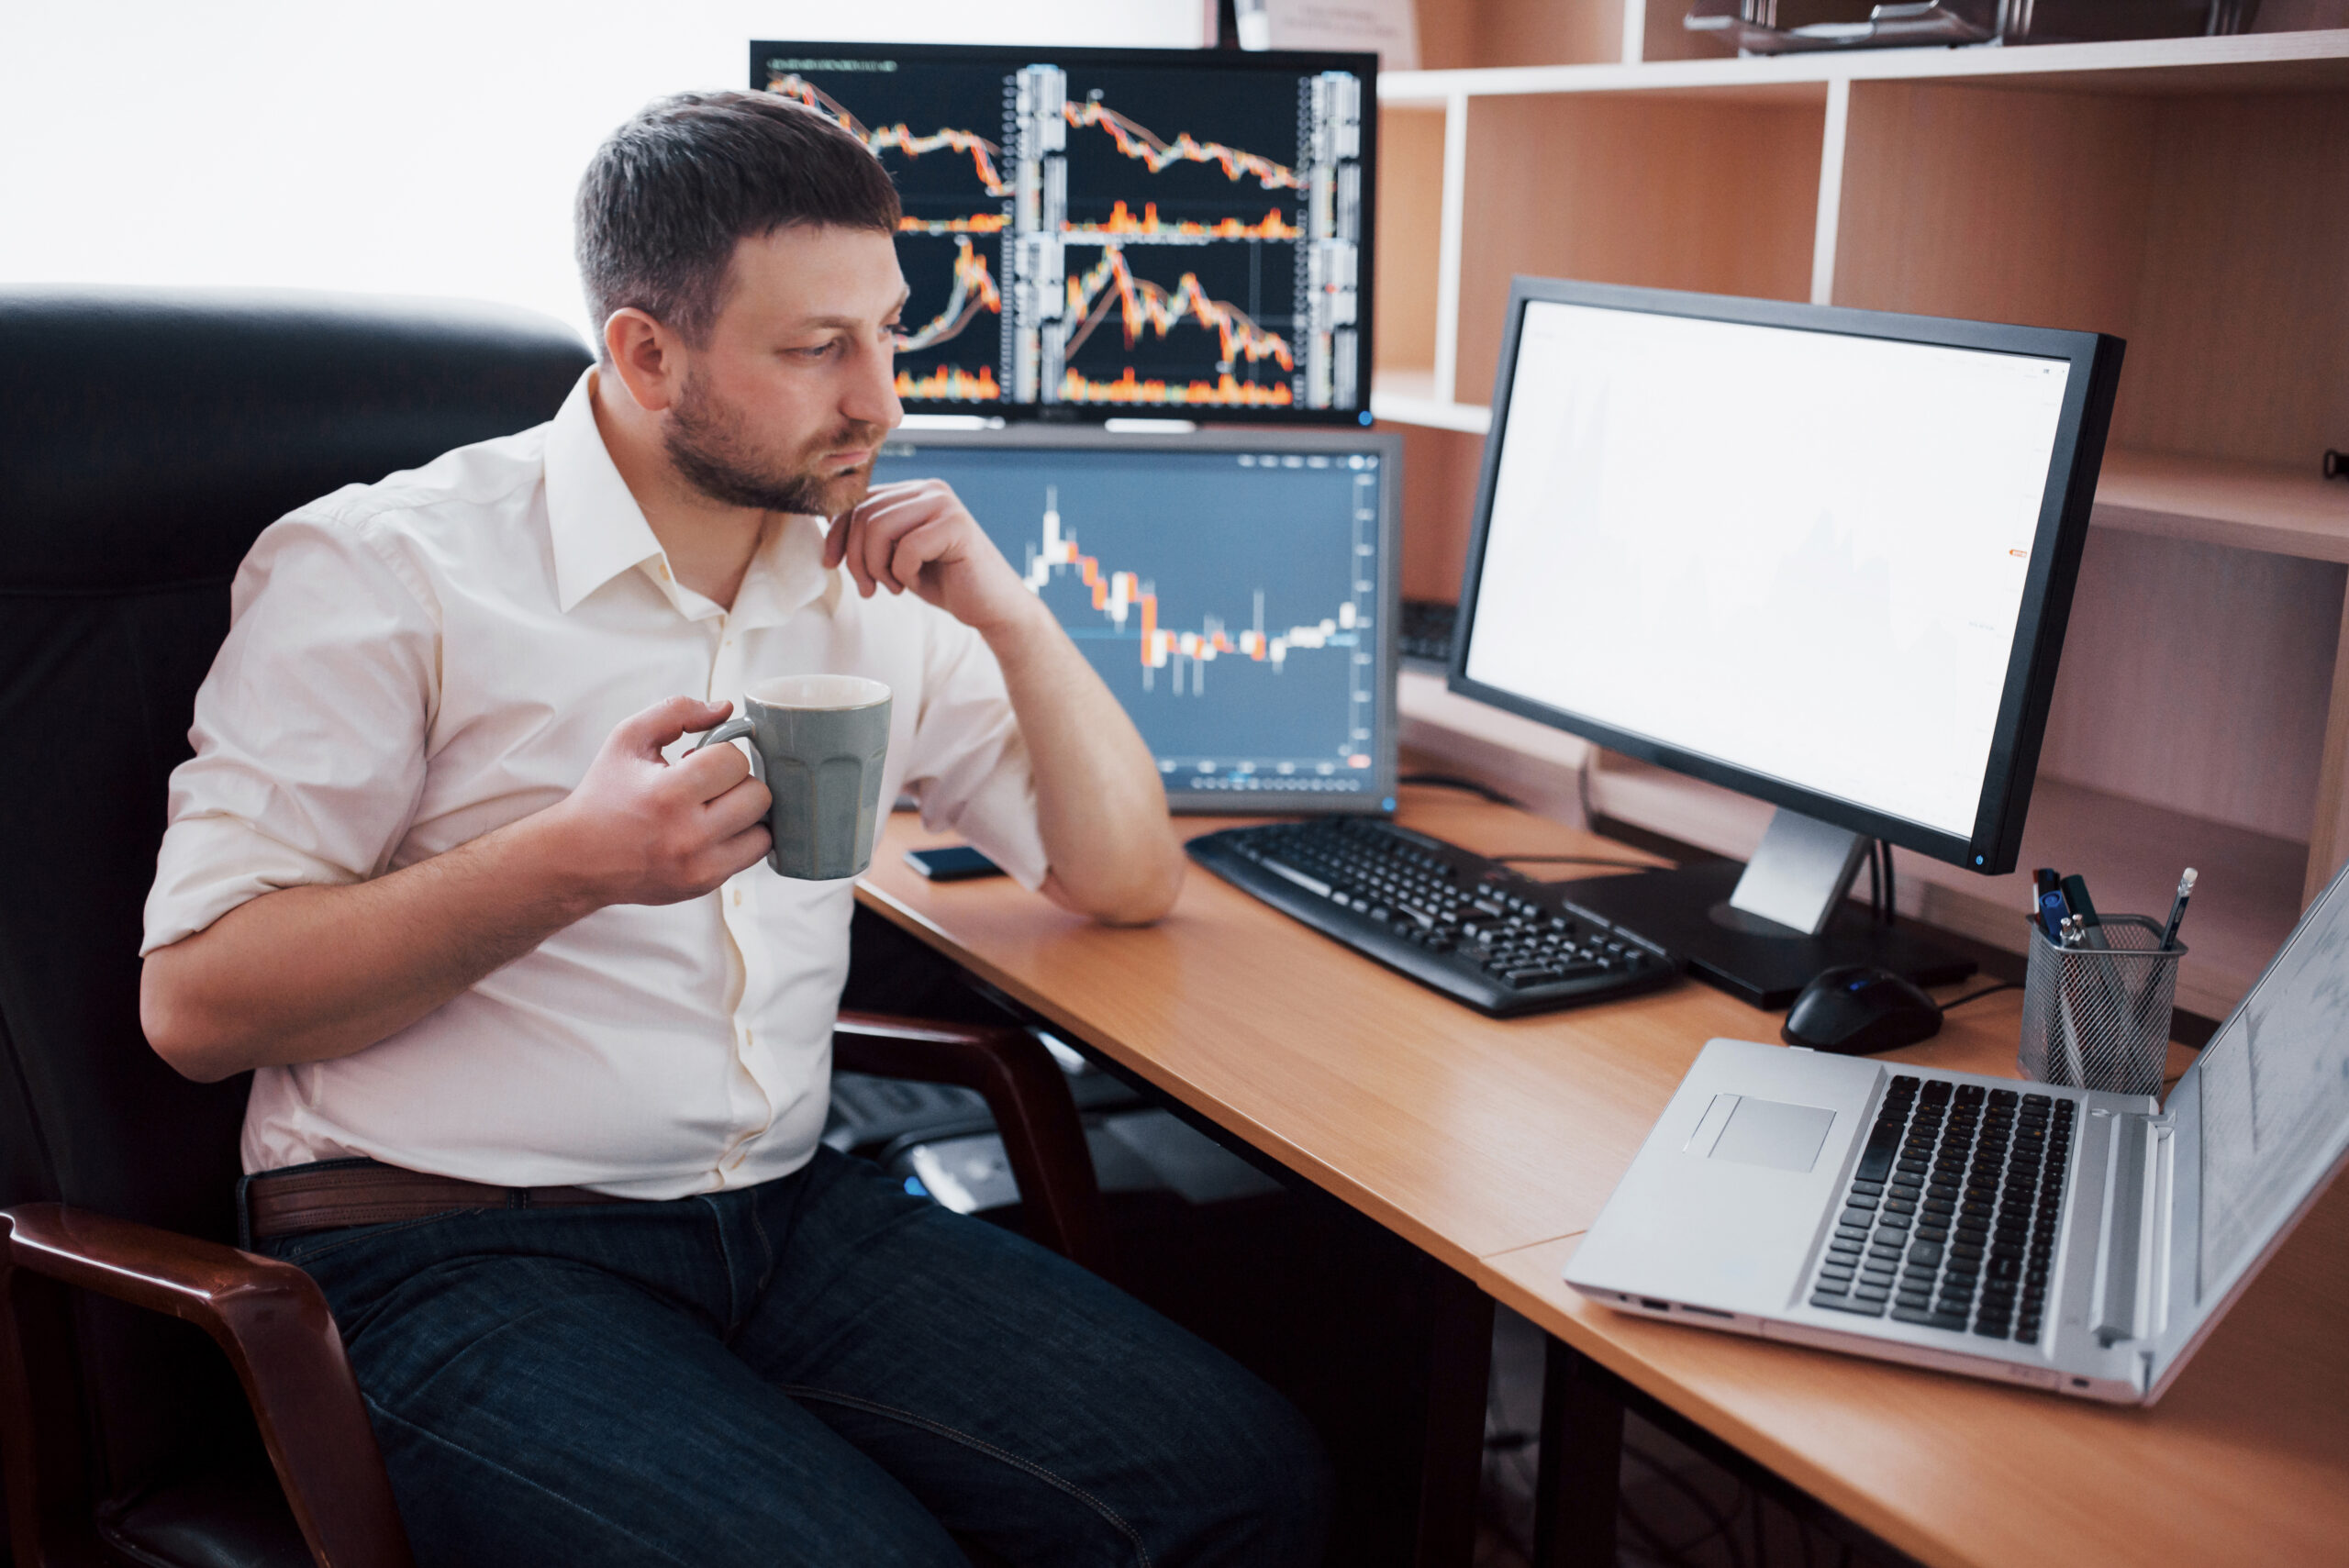 Young businessman is sitting in office at table, working on computer with many monitors,diagrams on monitor.